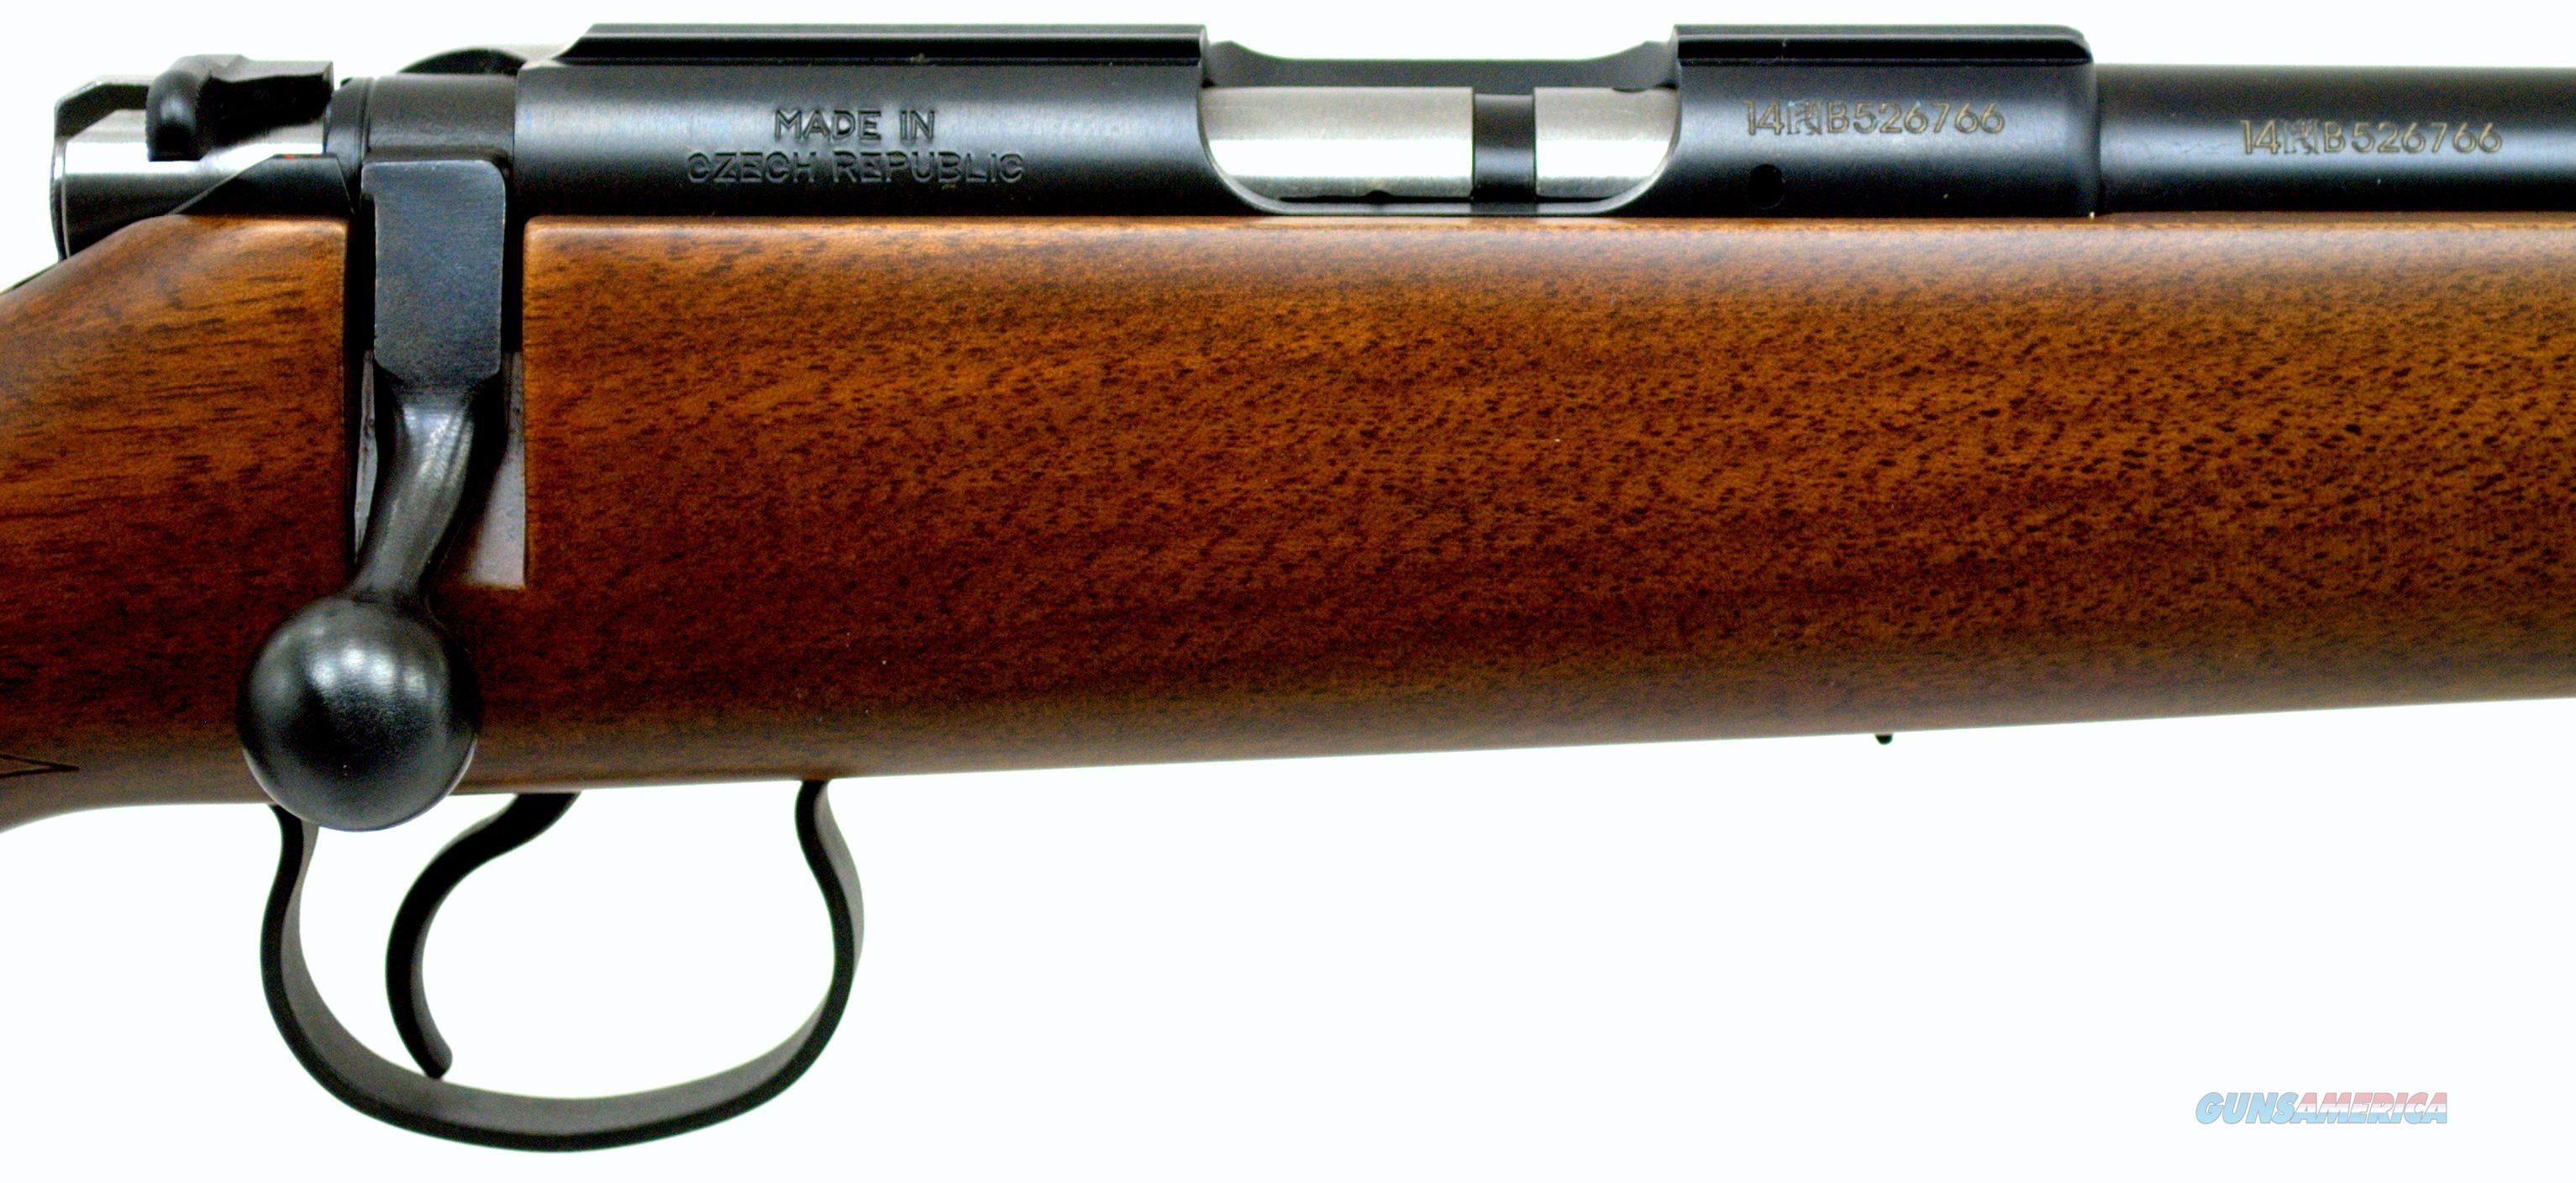 Cz 455 varmint review youtube - Cz Rifles For Sale On Gunsamerica Find Guns For Sale Gun Auctions And More On Gunsamerica